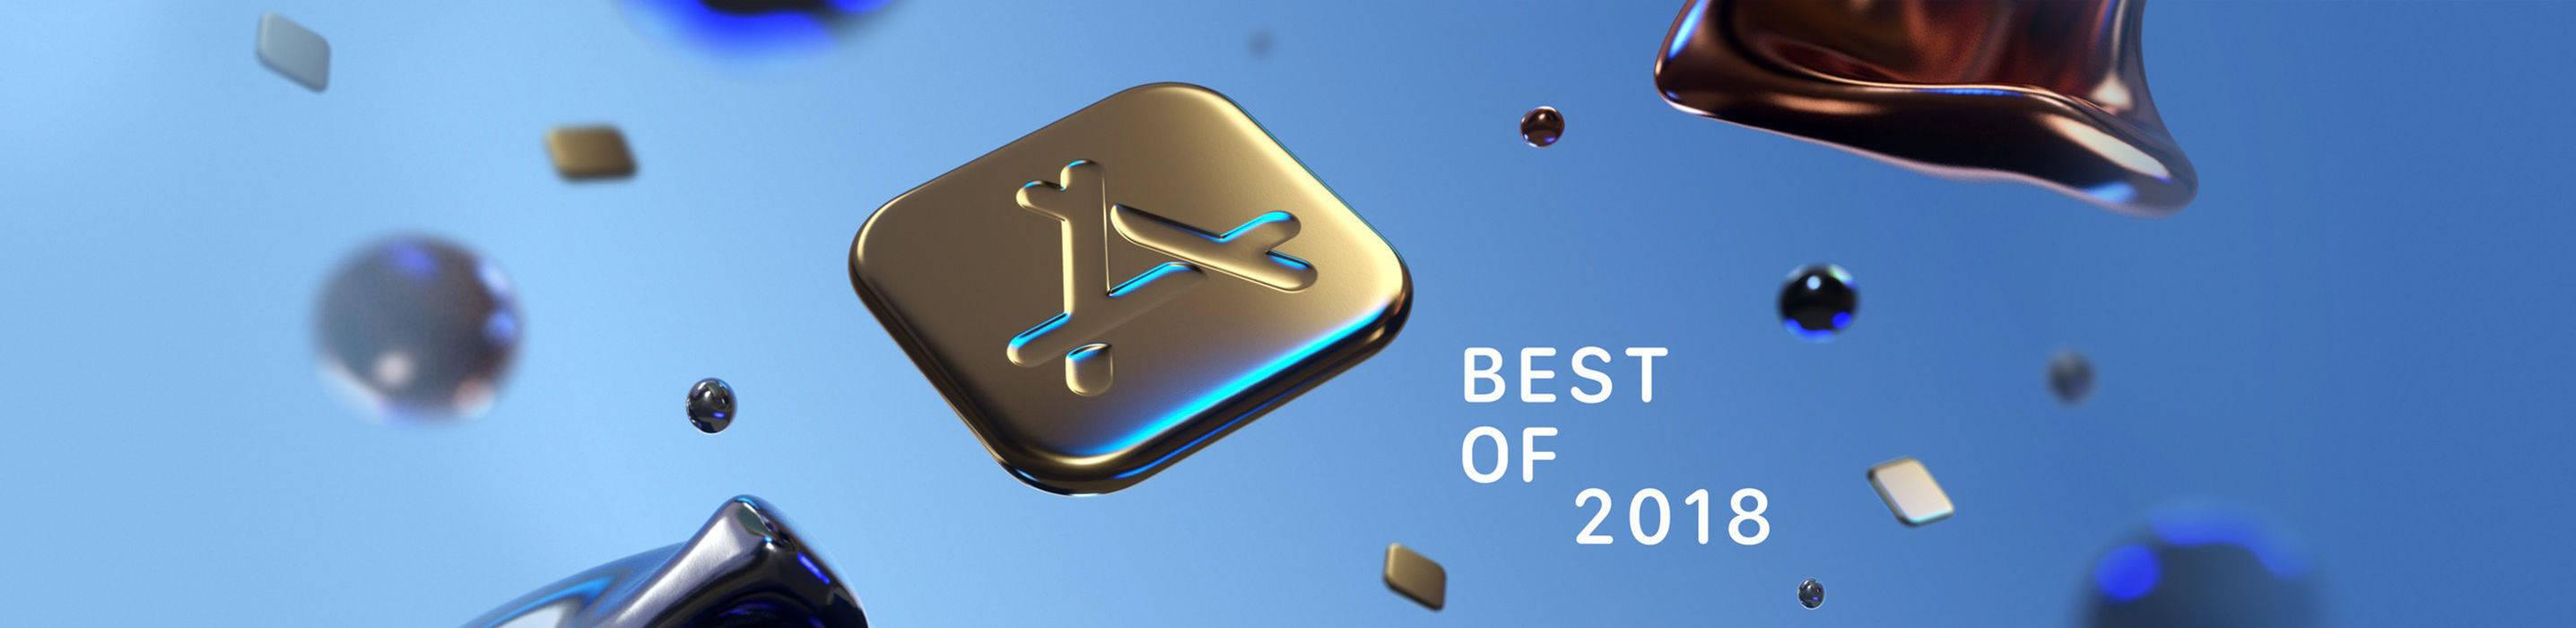 Apple Game of the Year Awards 2018